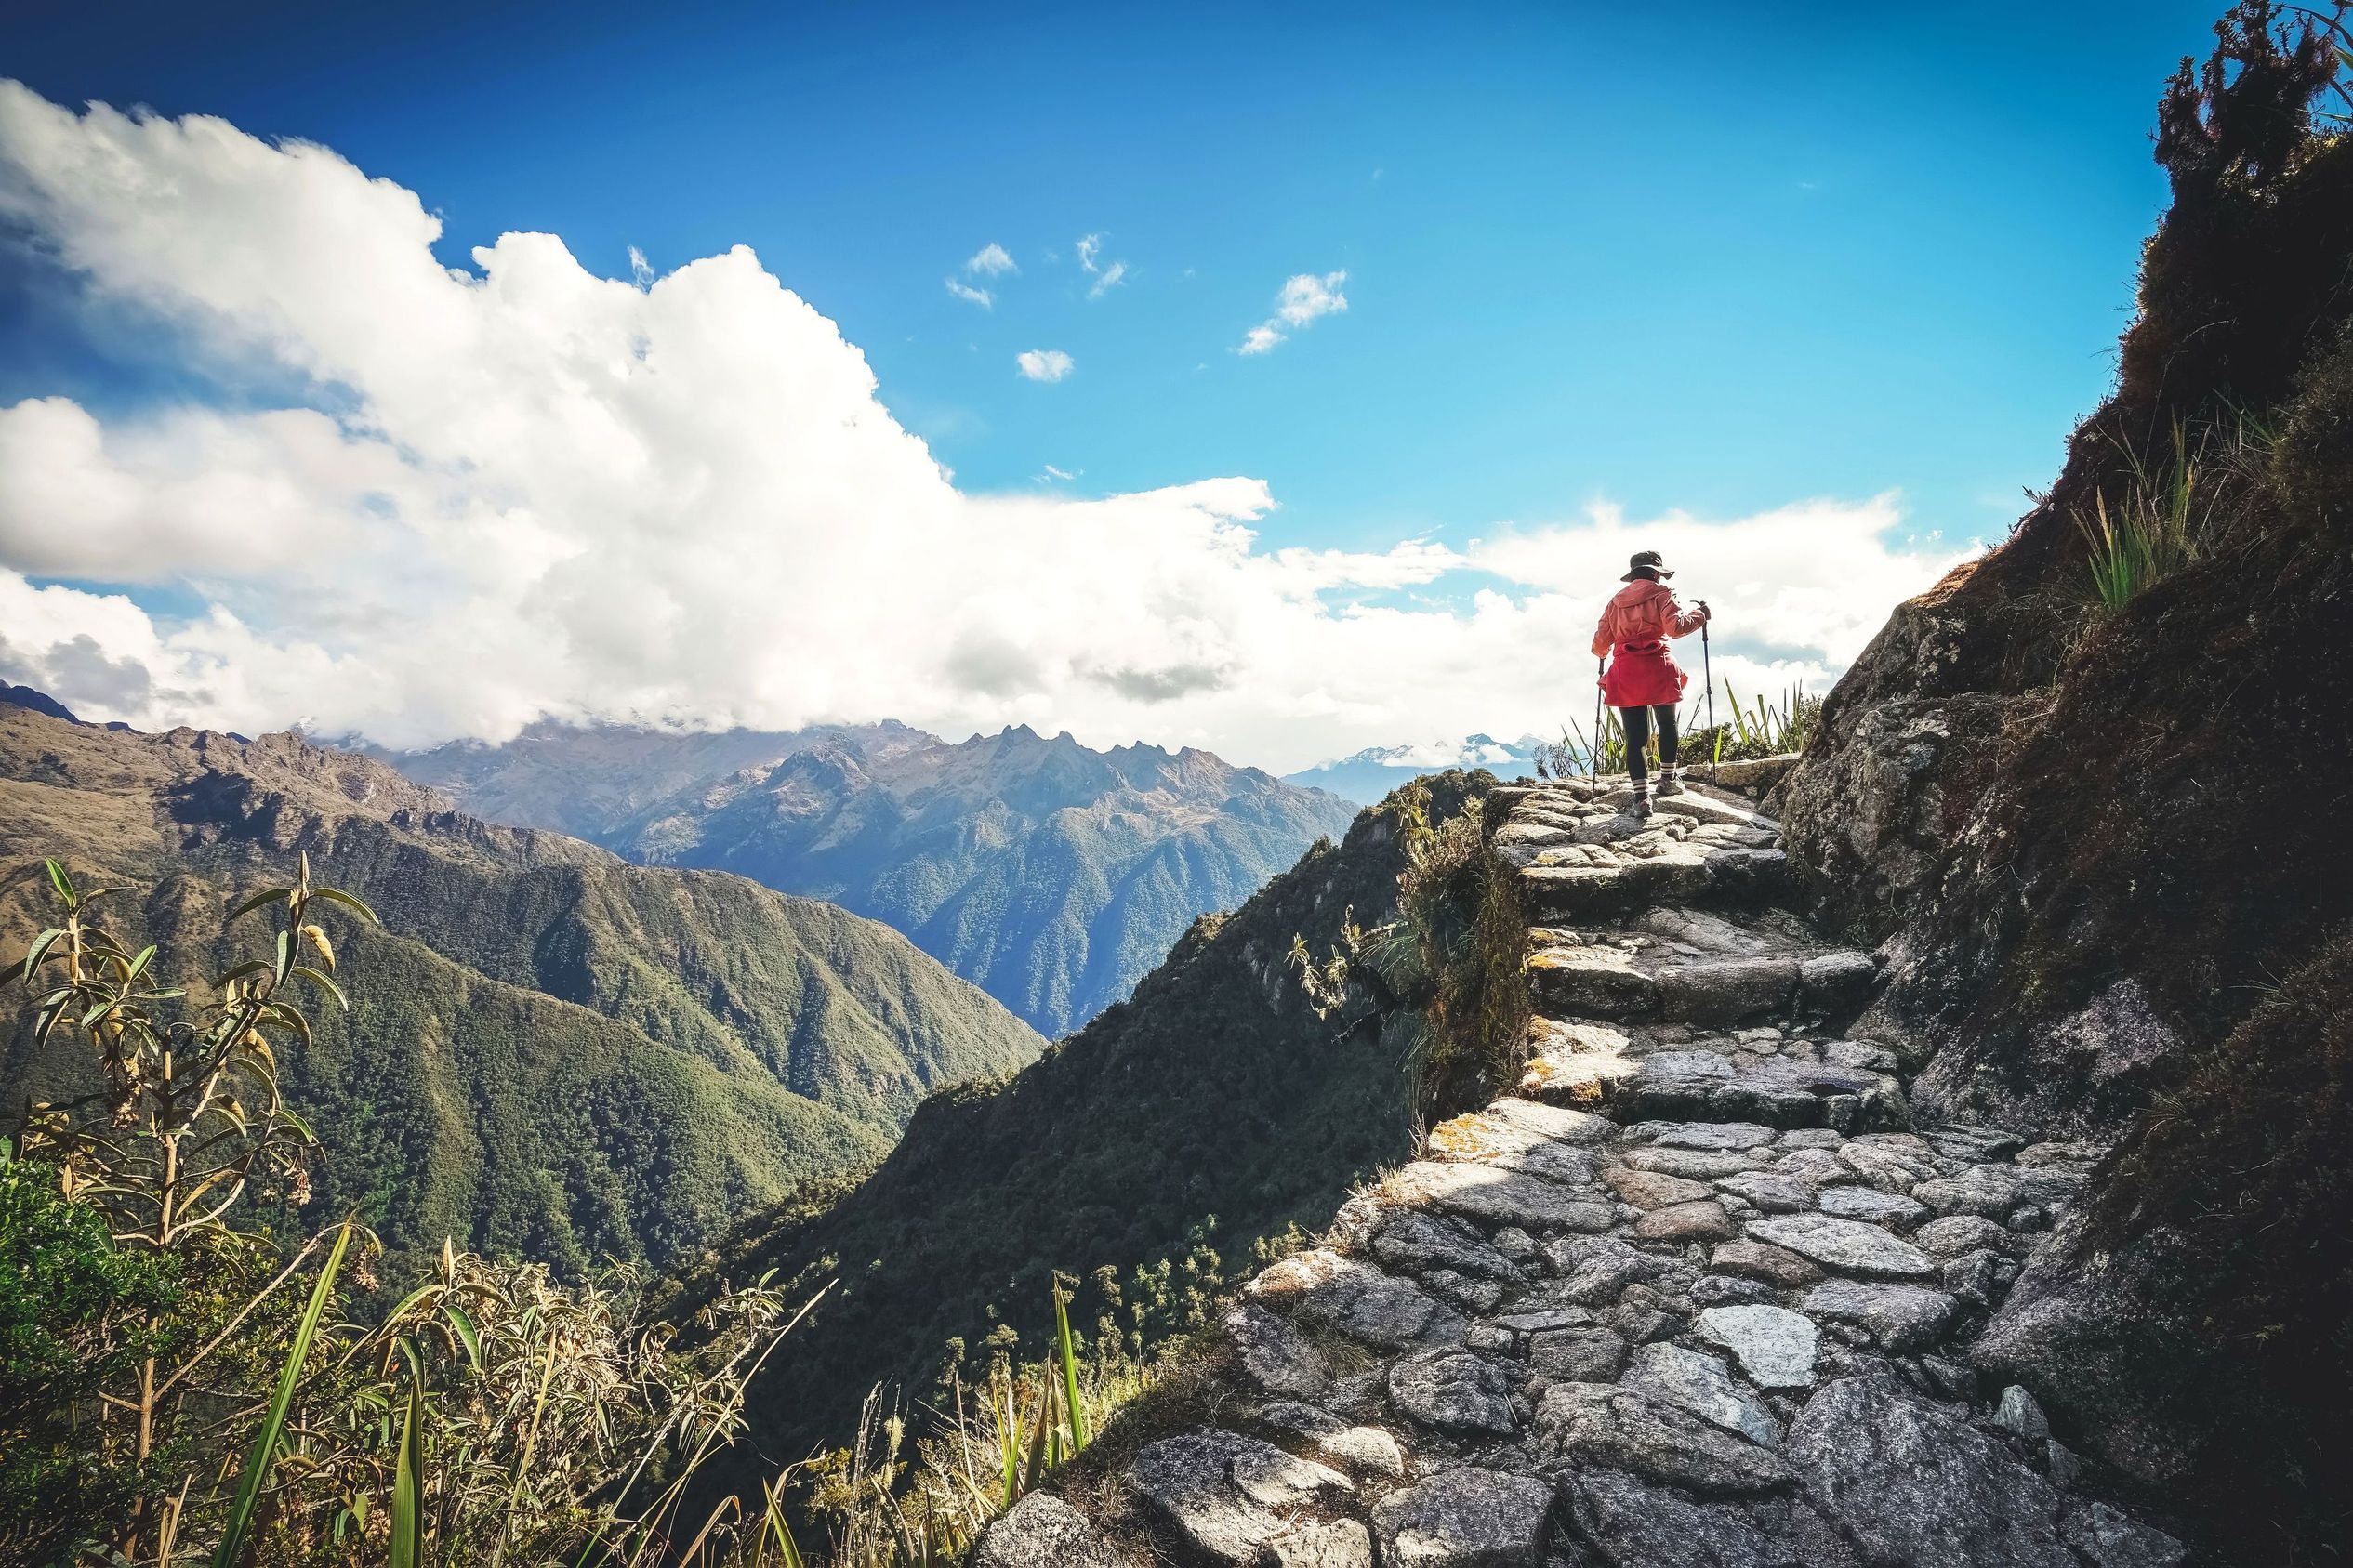 Summer trekking ideas: Where to go for the most smashing views